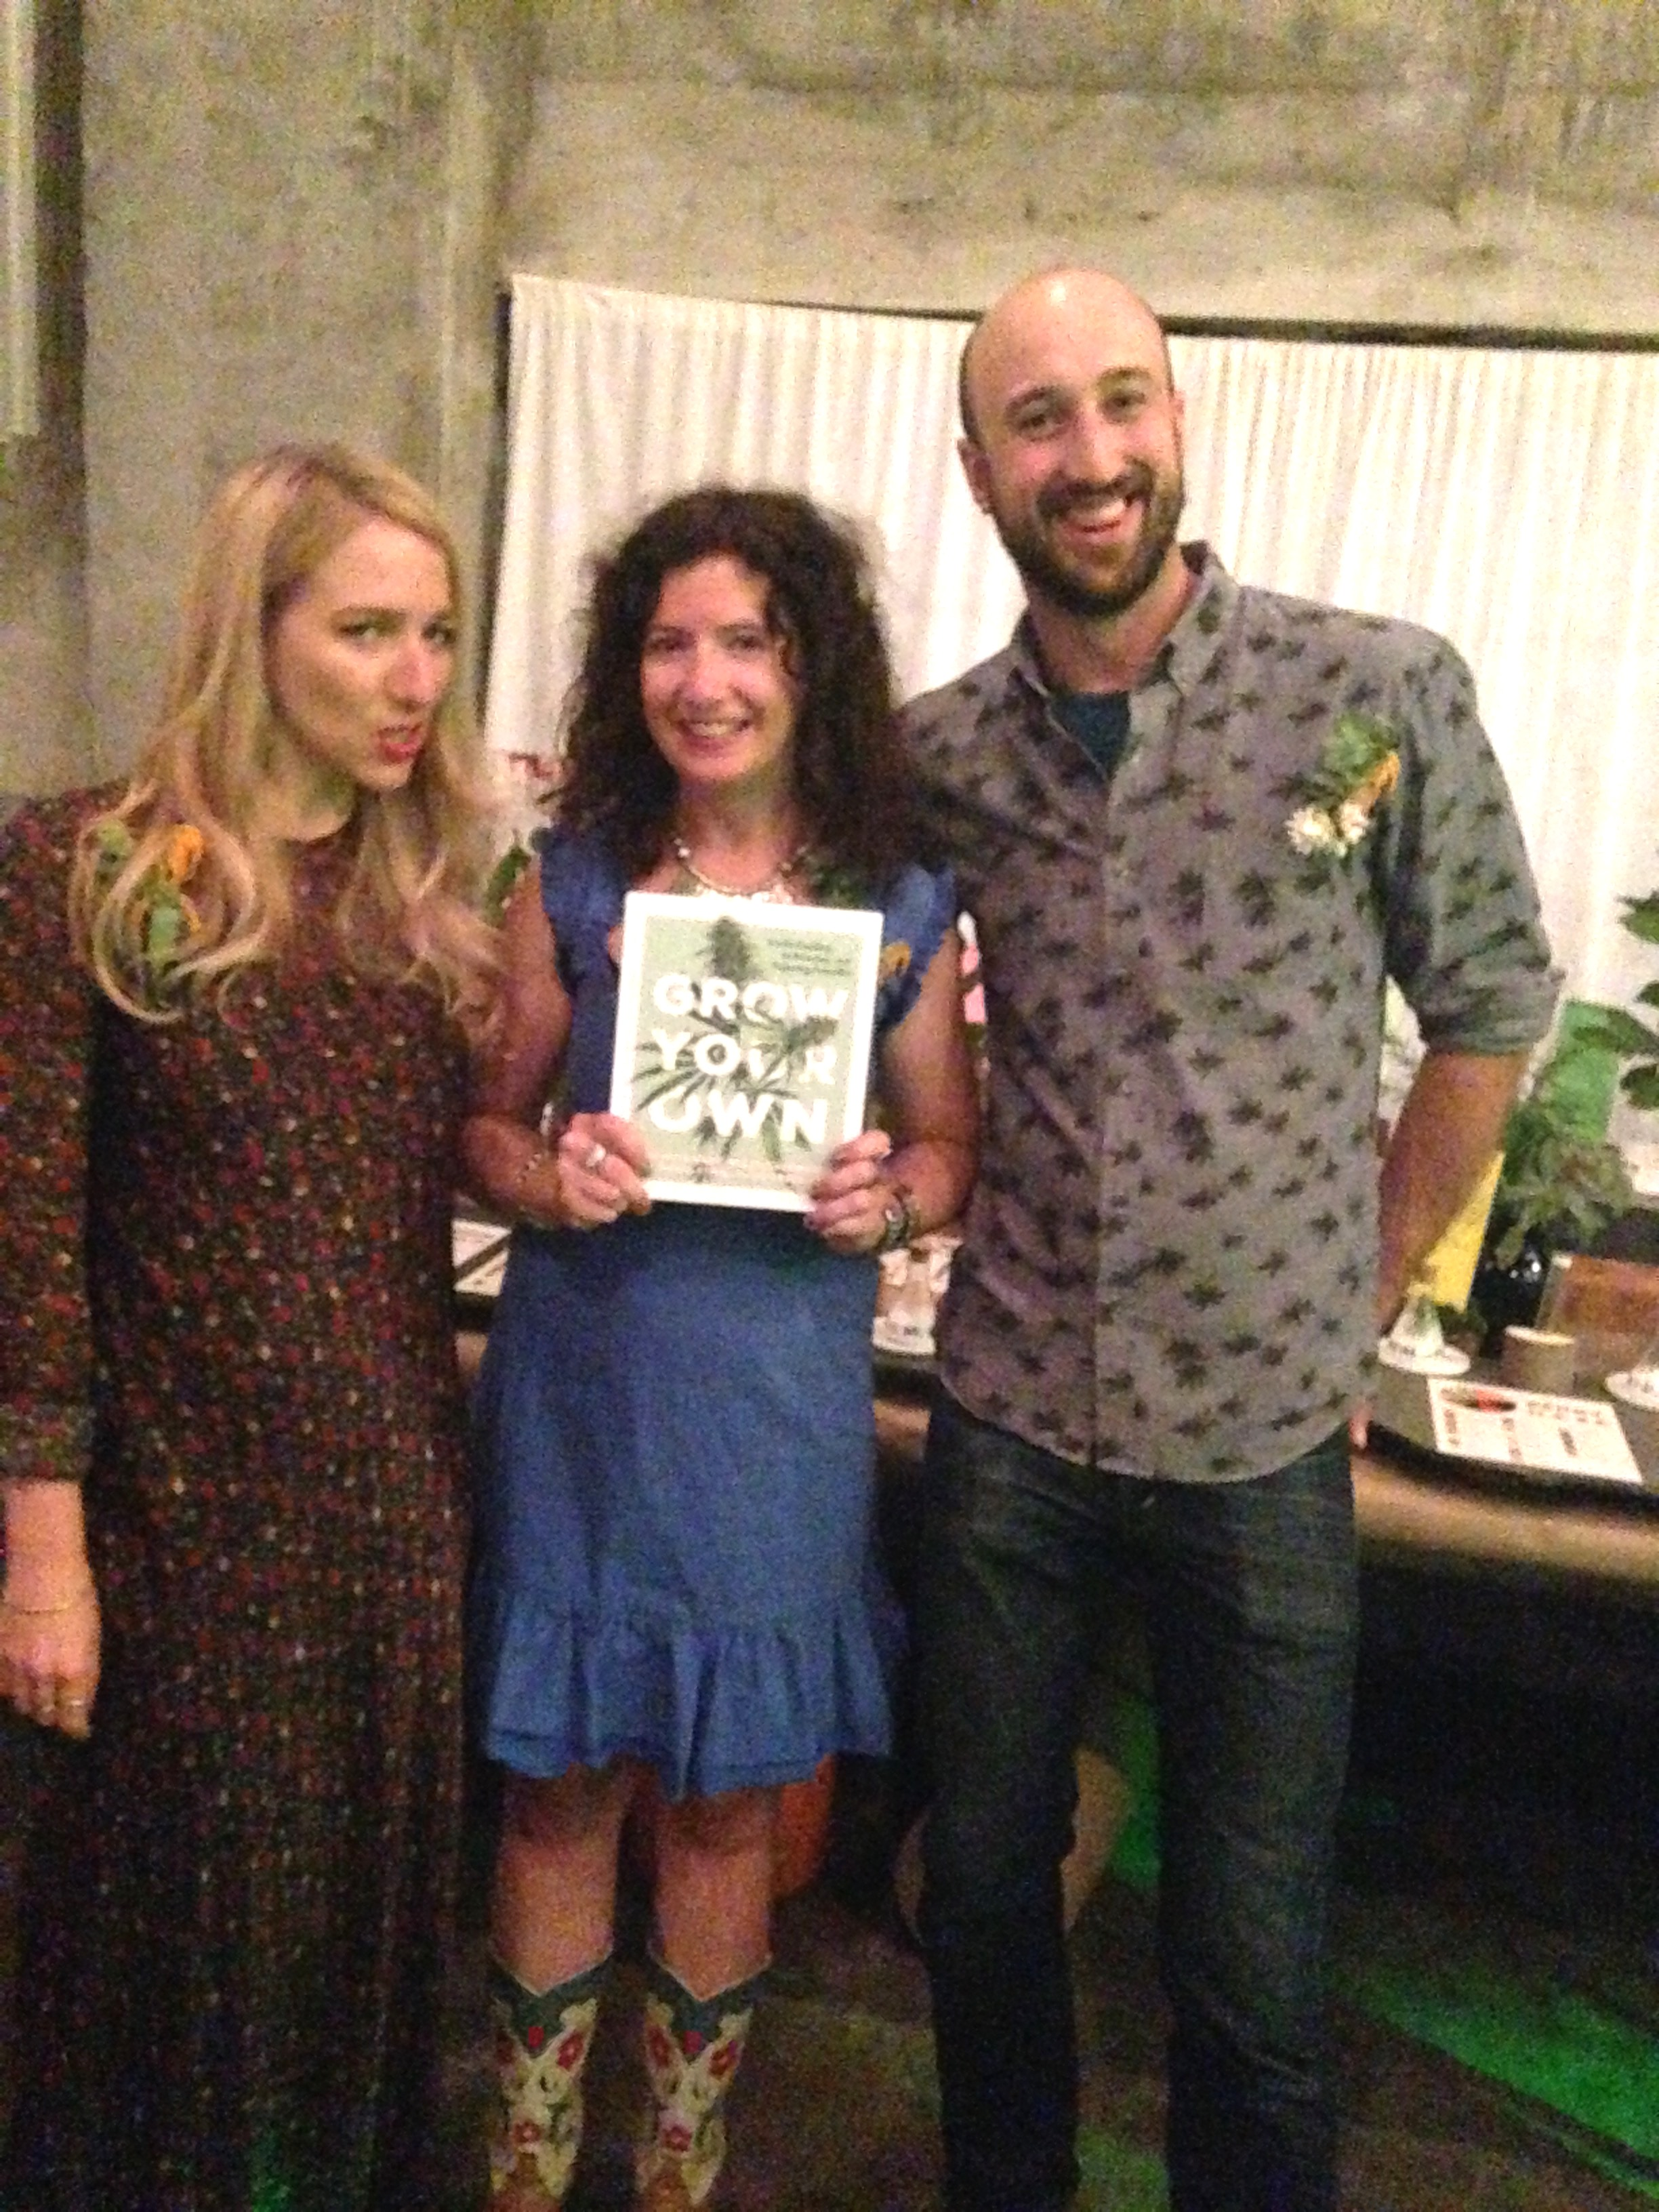 Happiest  Grow Your Own: Understanding, Cultivating, and Enjoying Cannabis co-authors Nichole Graf, me and Micah Sherman at the Holocene book launch party in mid-September. Such an incredible night.